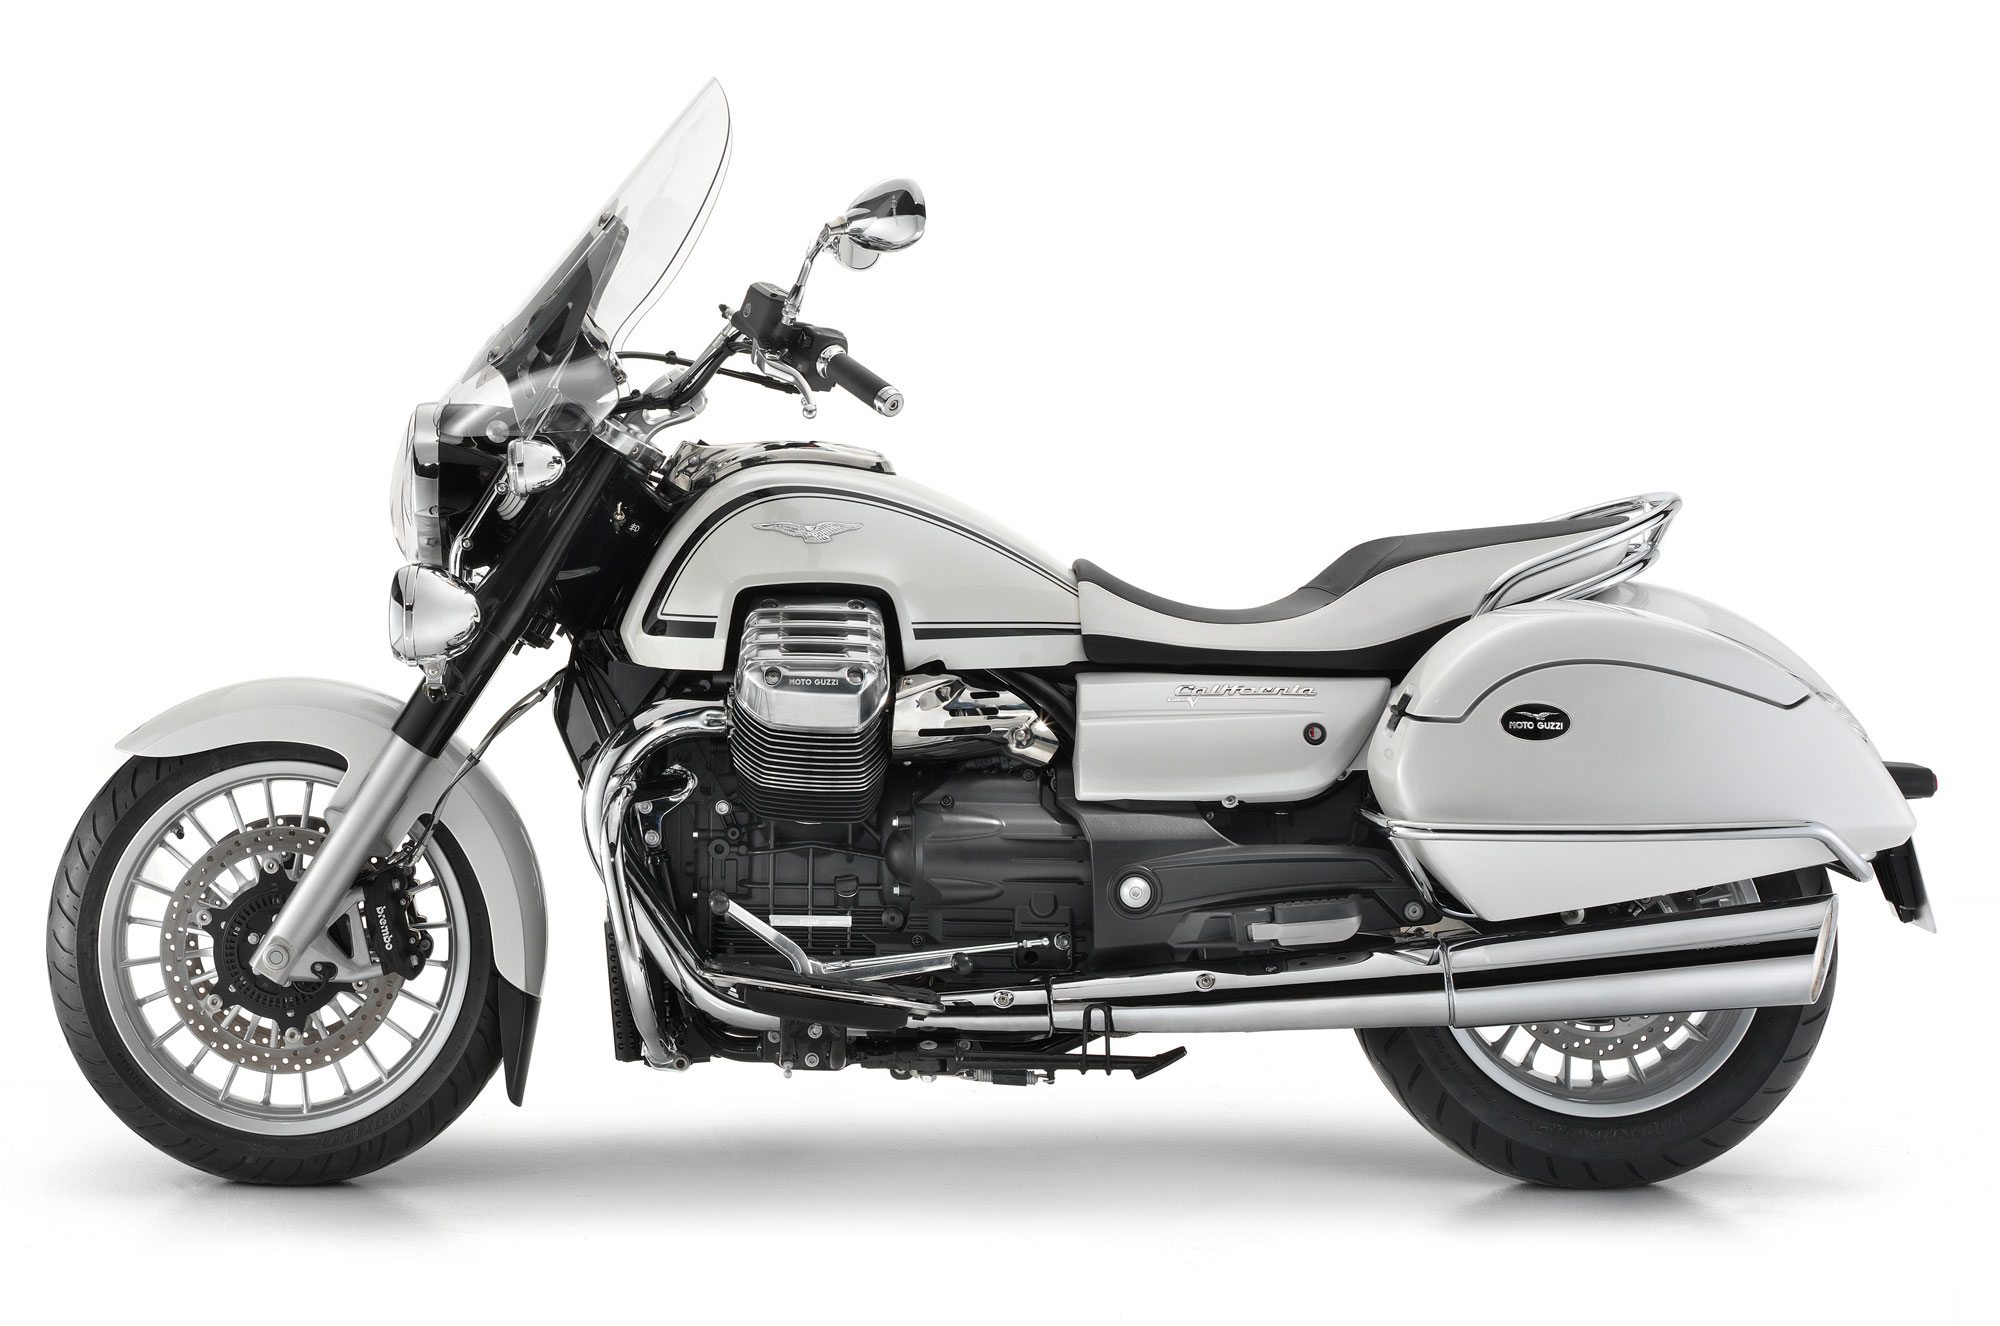 moto guzzi california 1400 touring specs 2012 2013 autoevolution. Black Bedroom Furniture Sets. Home Design Ideas